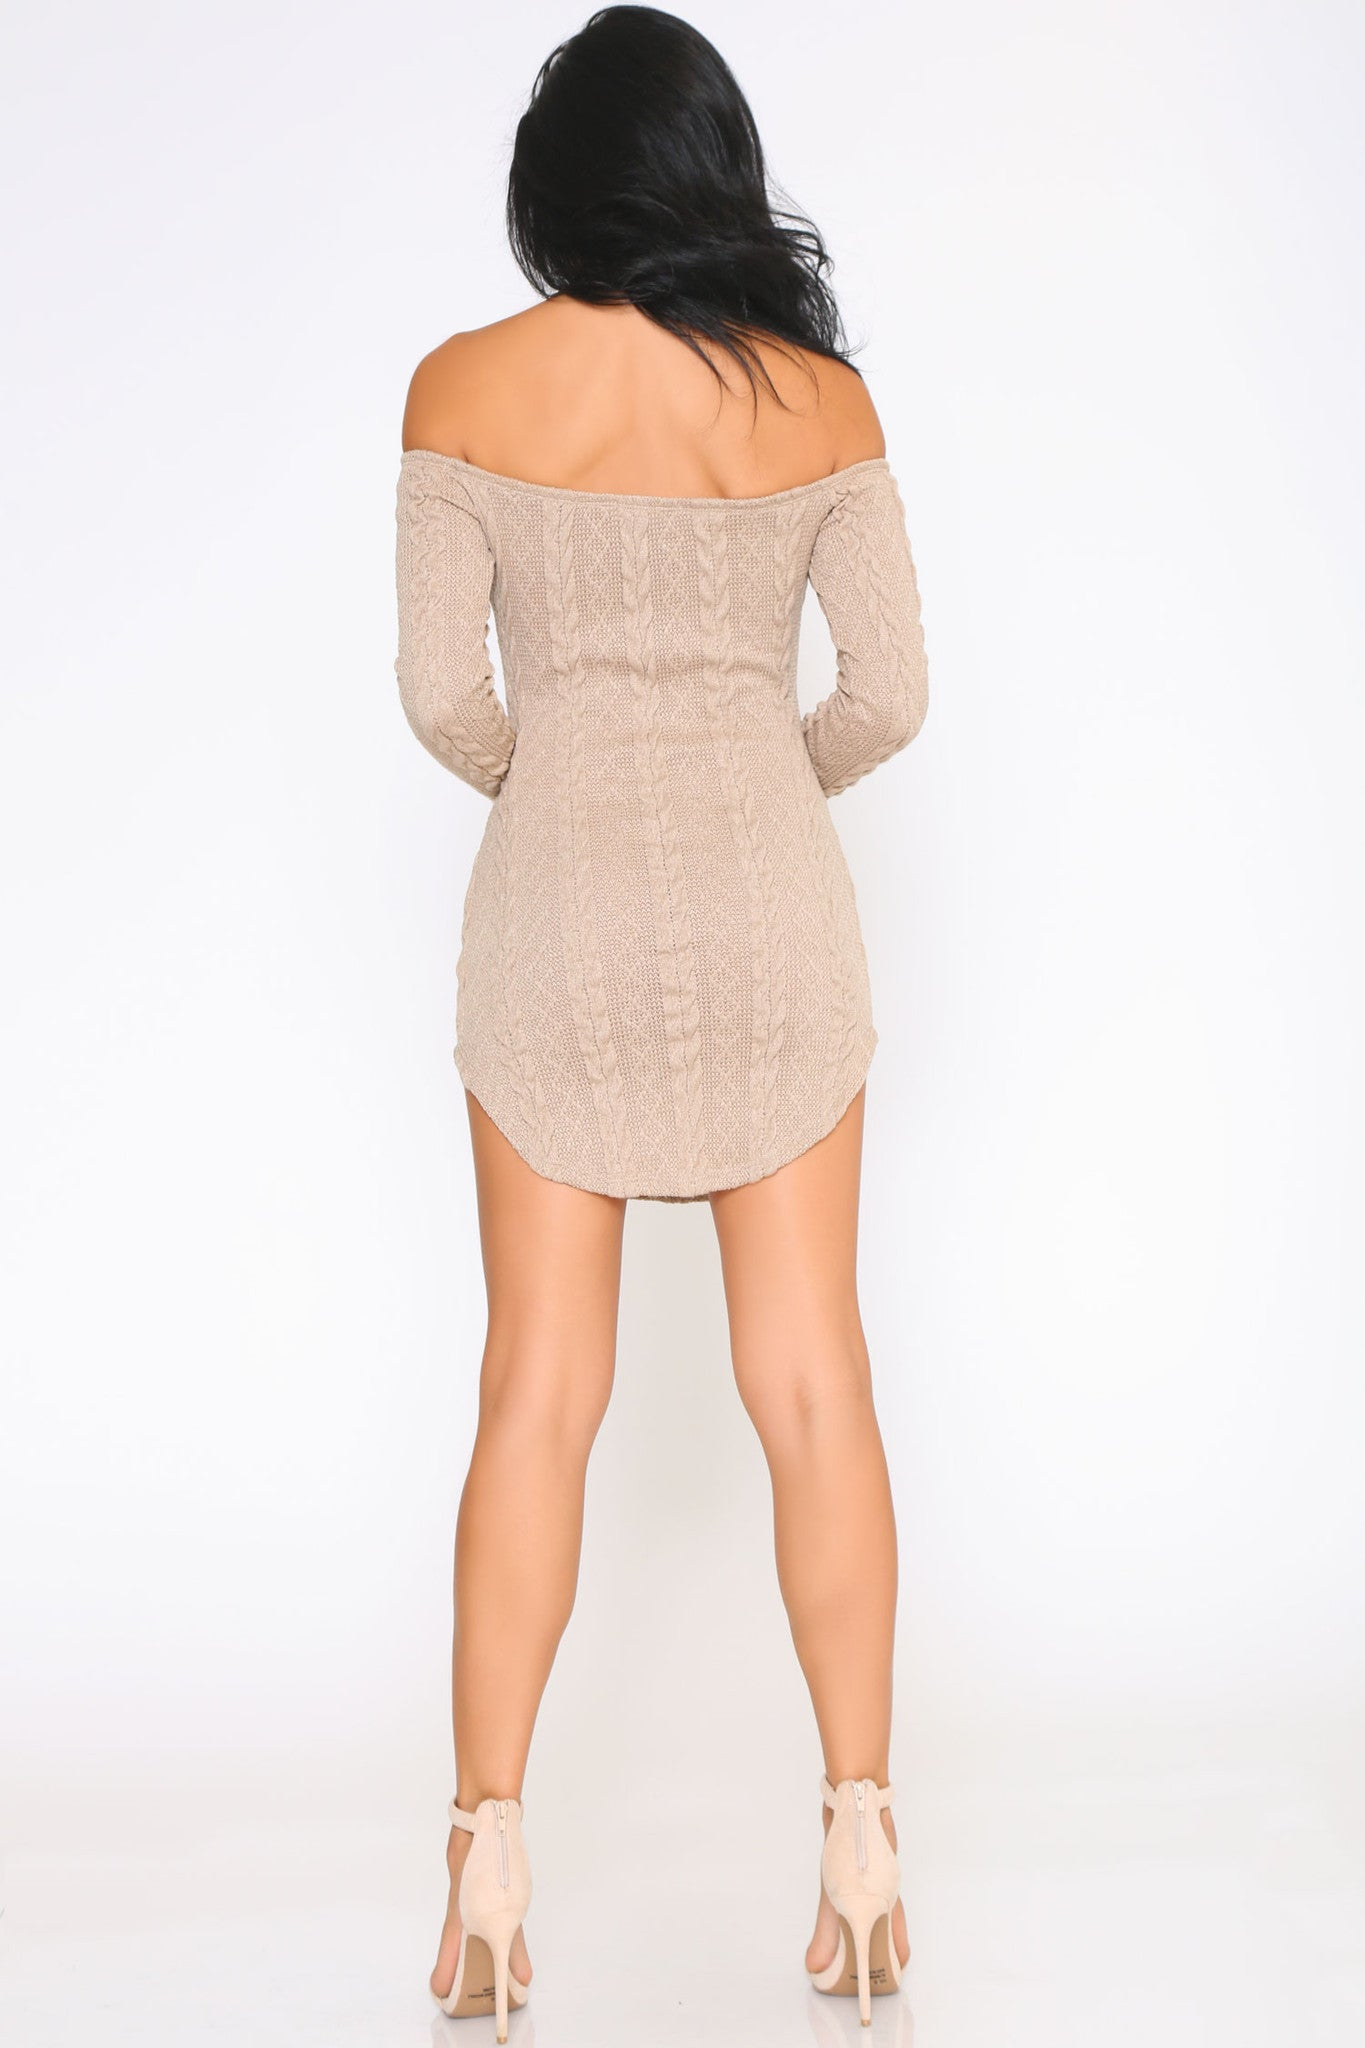 YVETTE DRESS - Glam Envy - 3